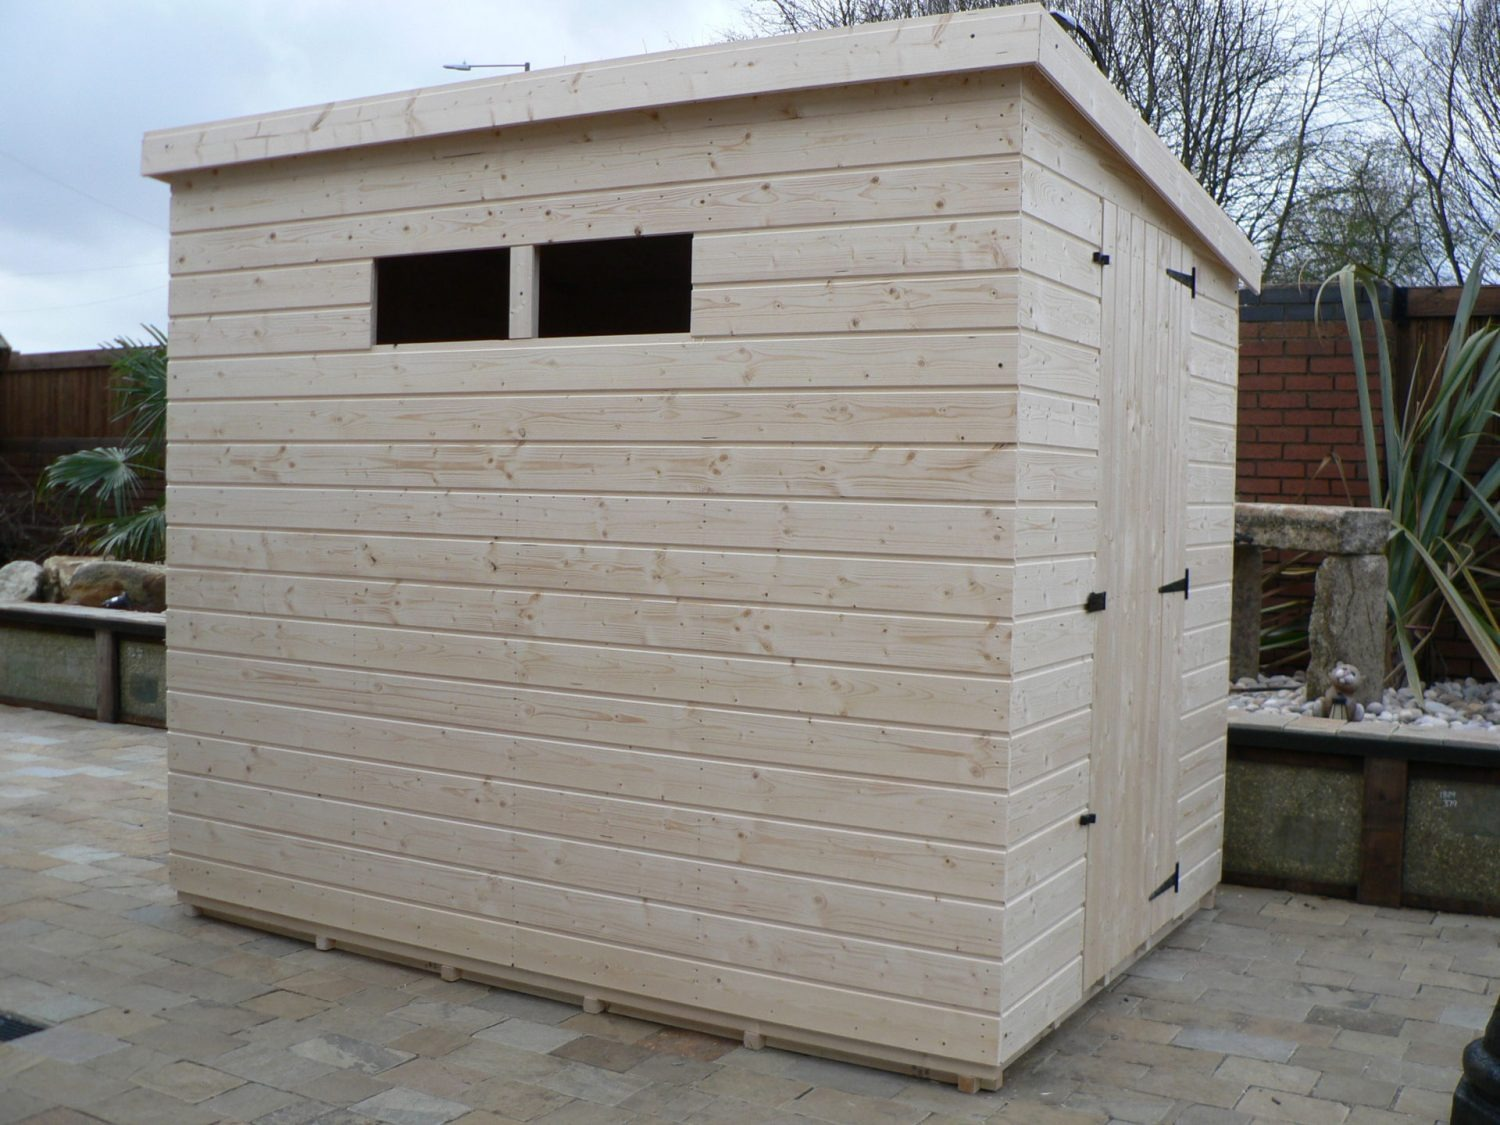 8' X 6' Pent Shed Security Windows